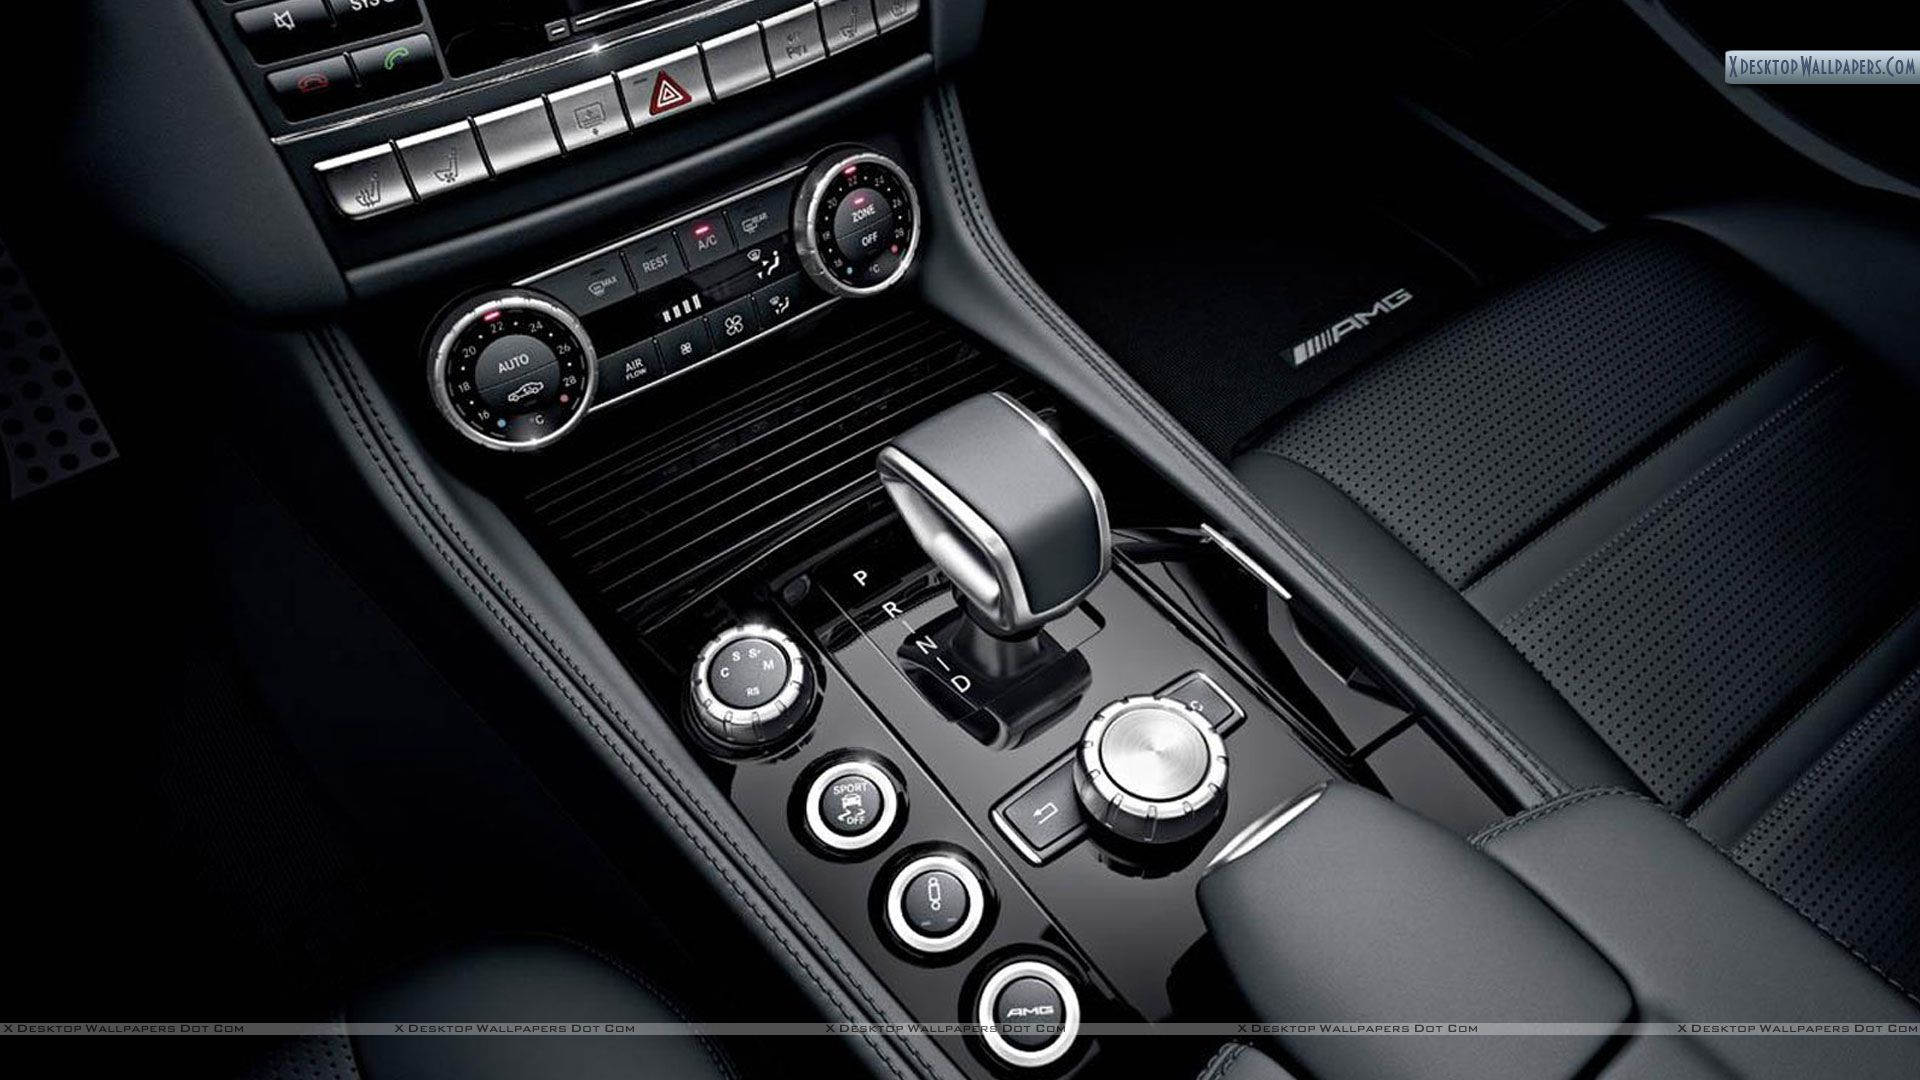 Mercedes benz cls63 wallpapers photos images in hd for Mercedes benz gear shift